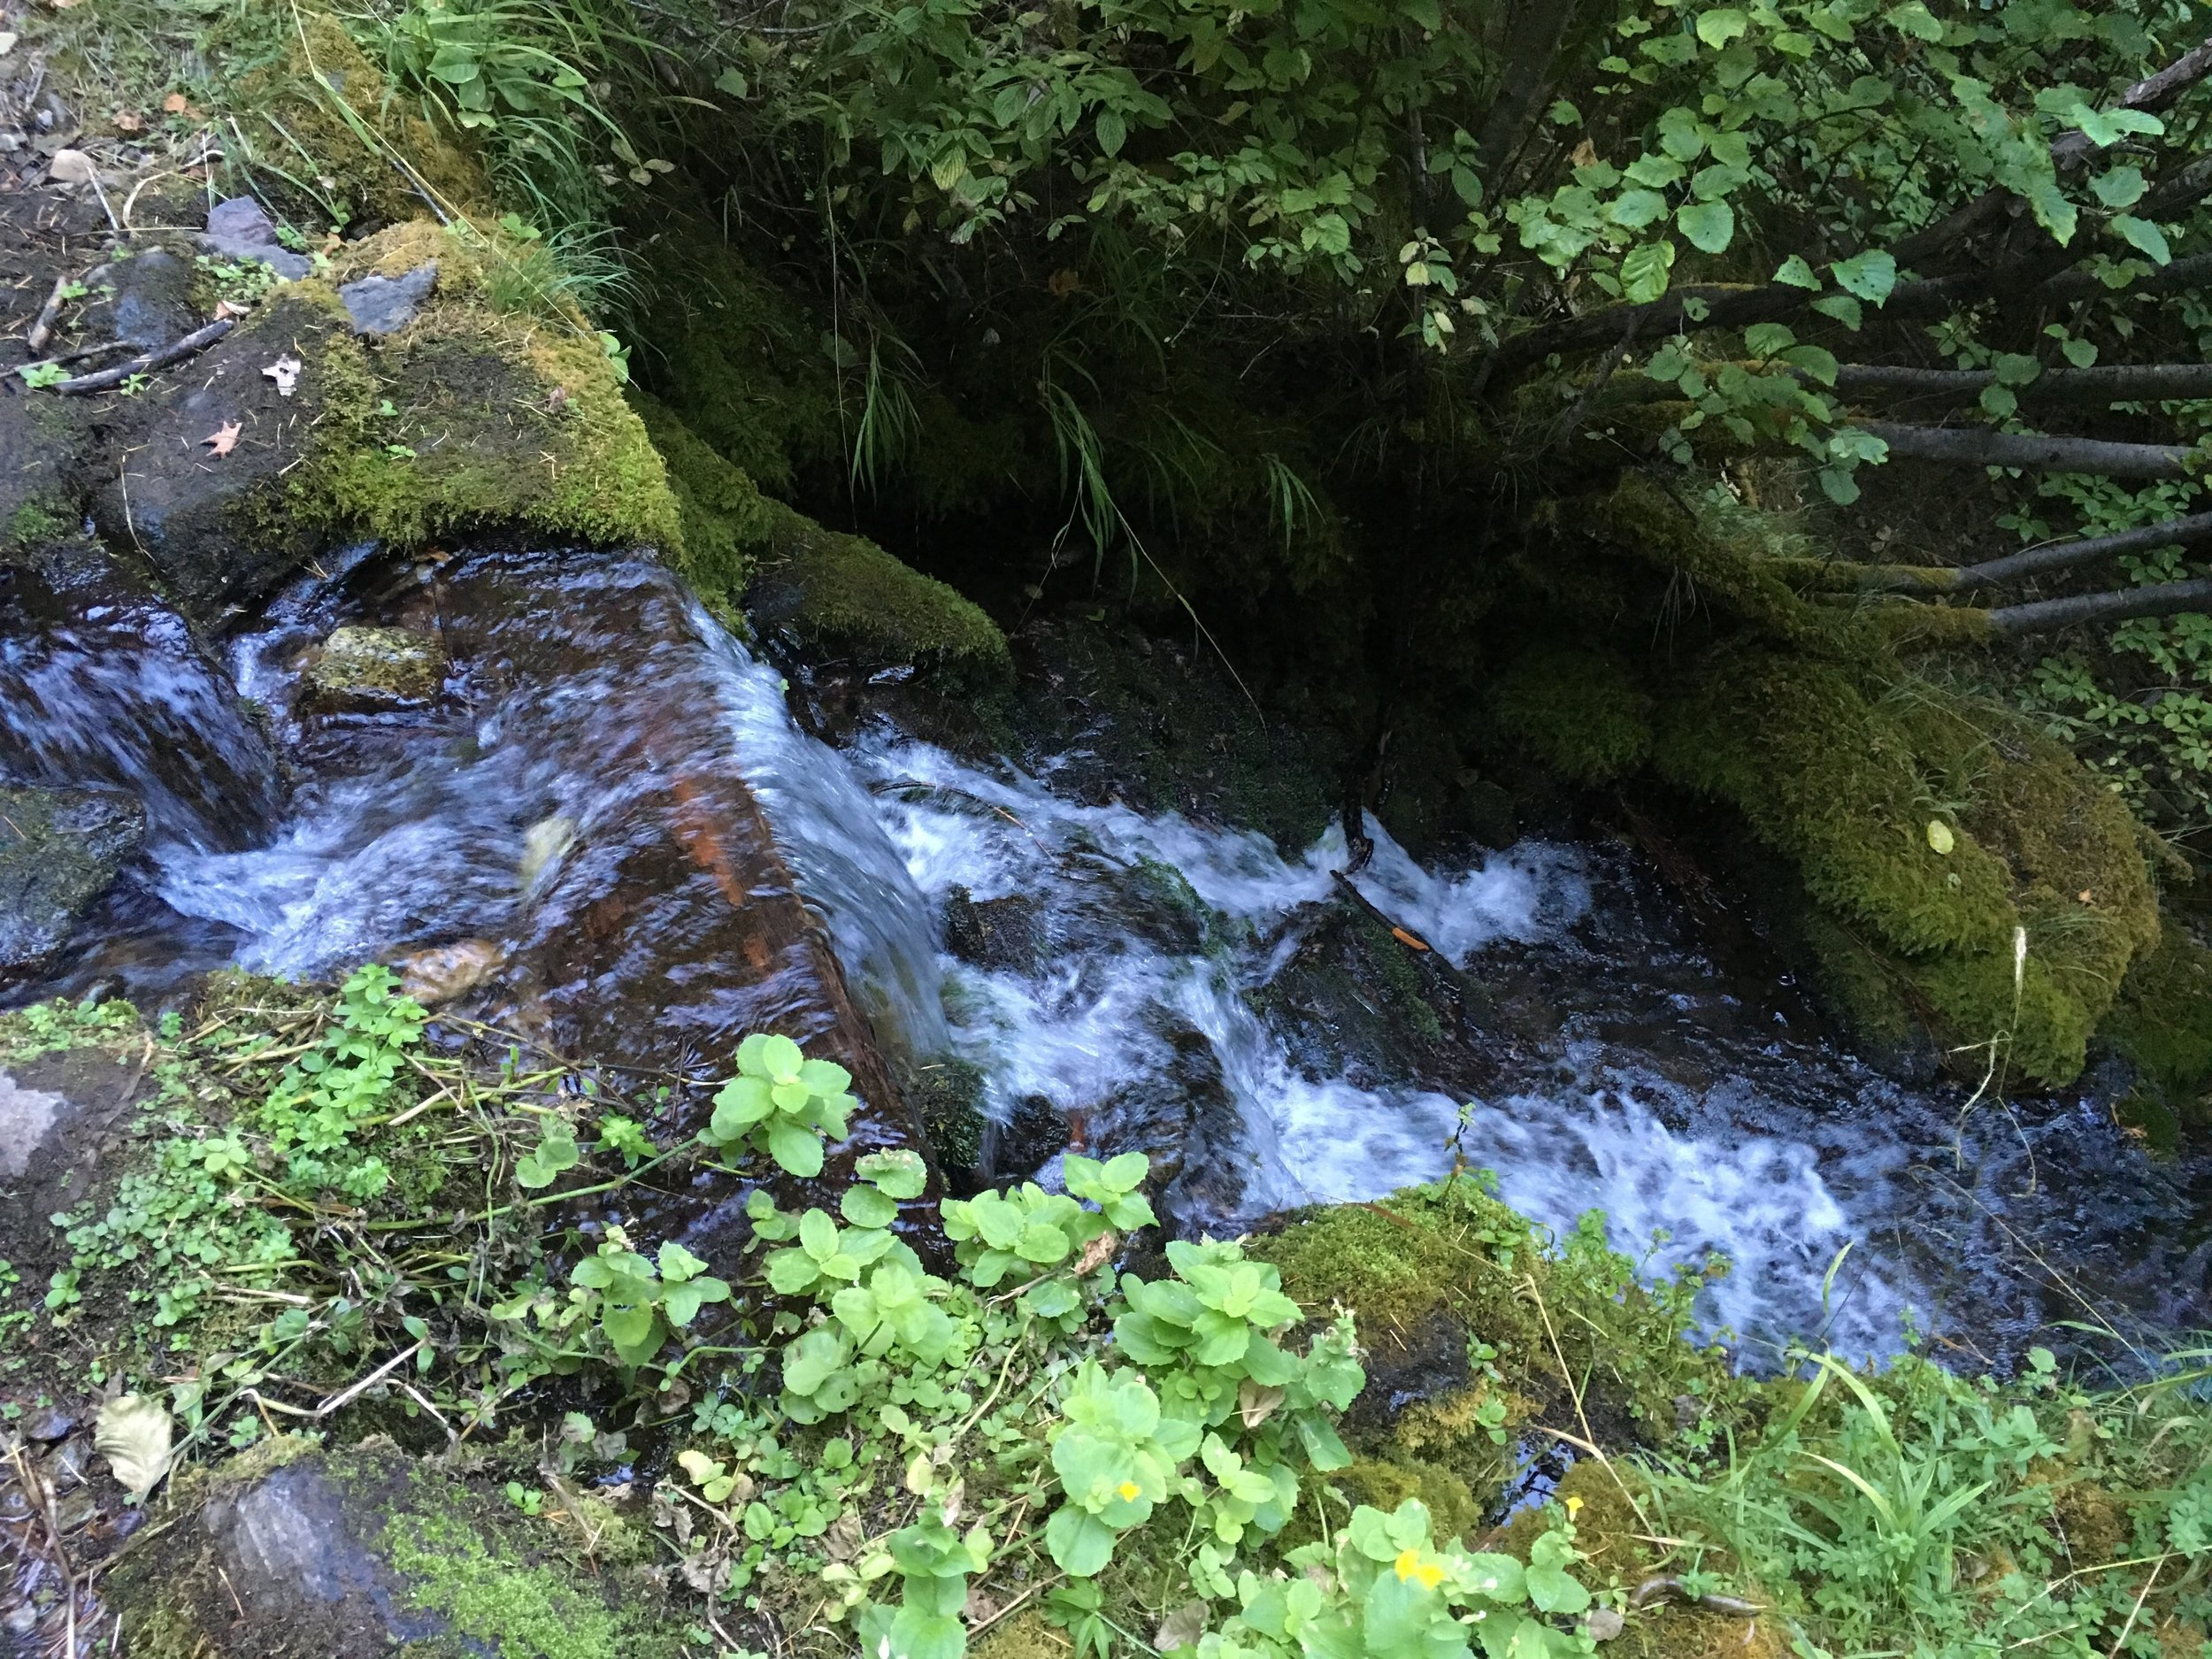 One of the numerous side creeks along the trail to the middle fork.